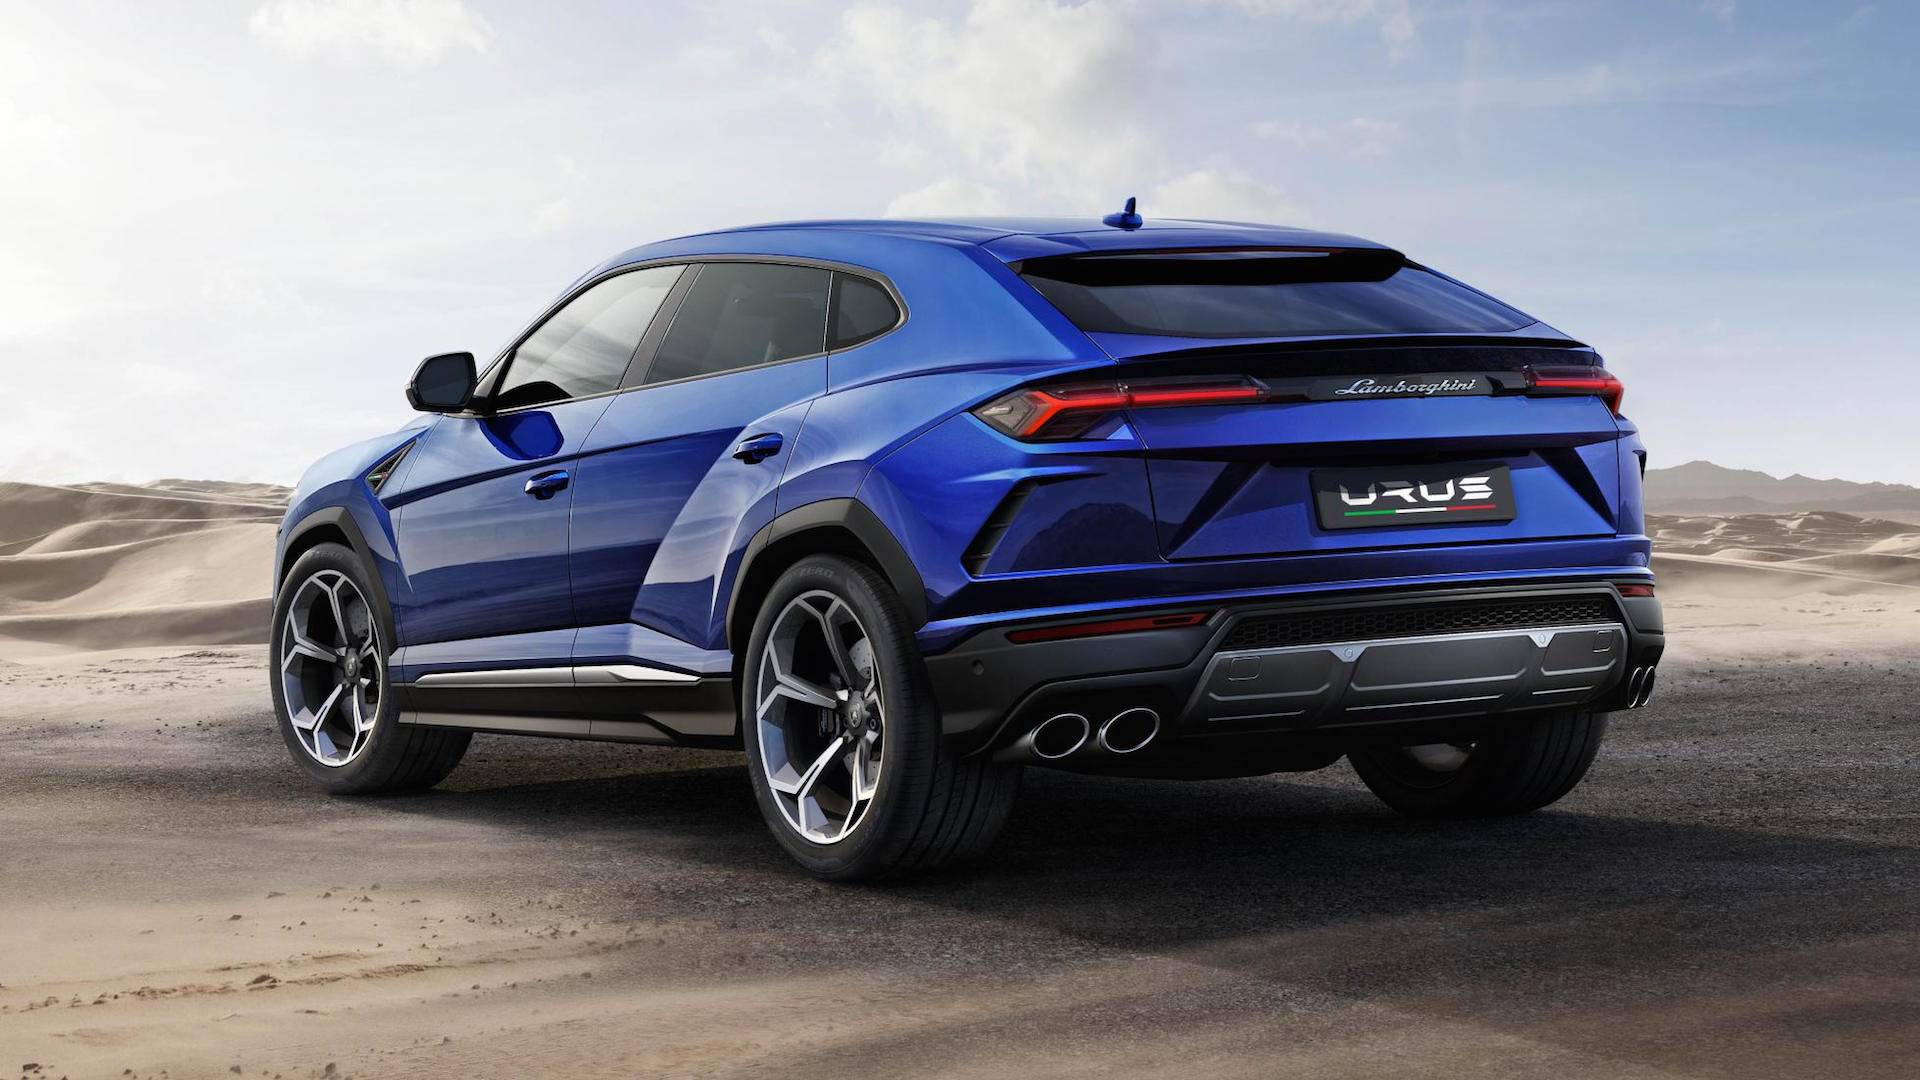 Lamborghini Happy To Report Urus Is A Hit, Average Price Is